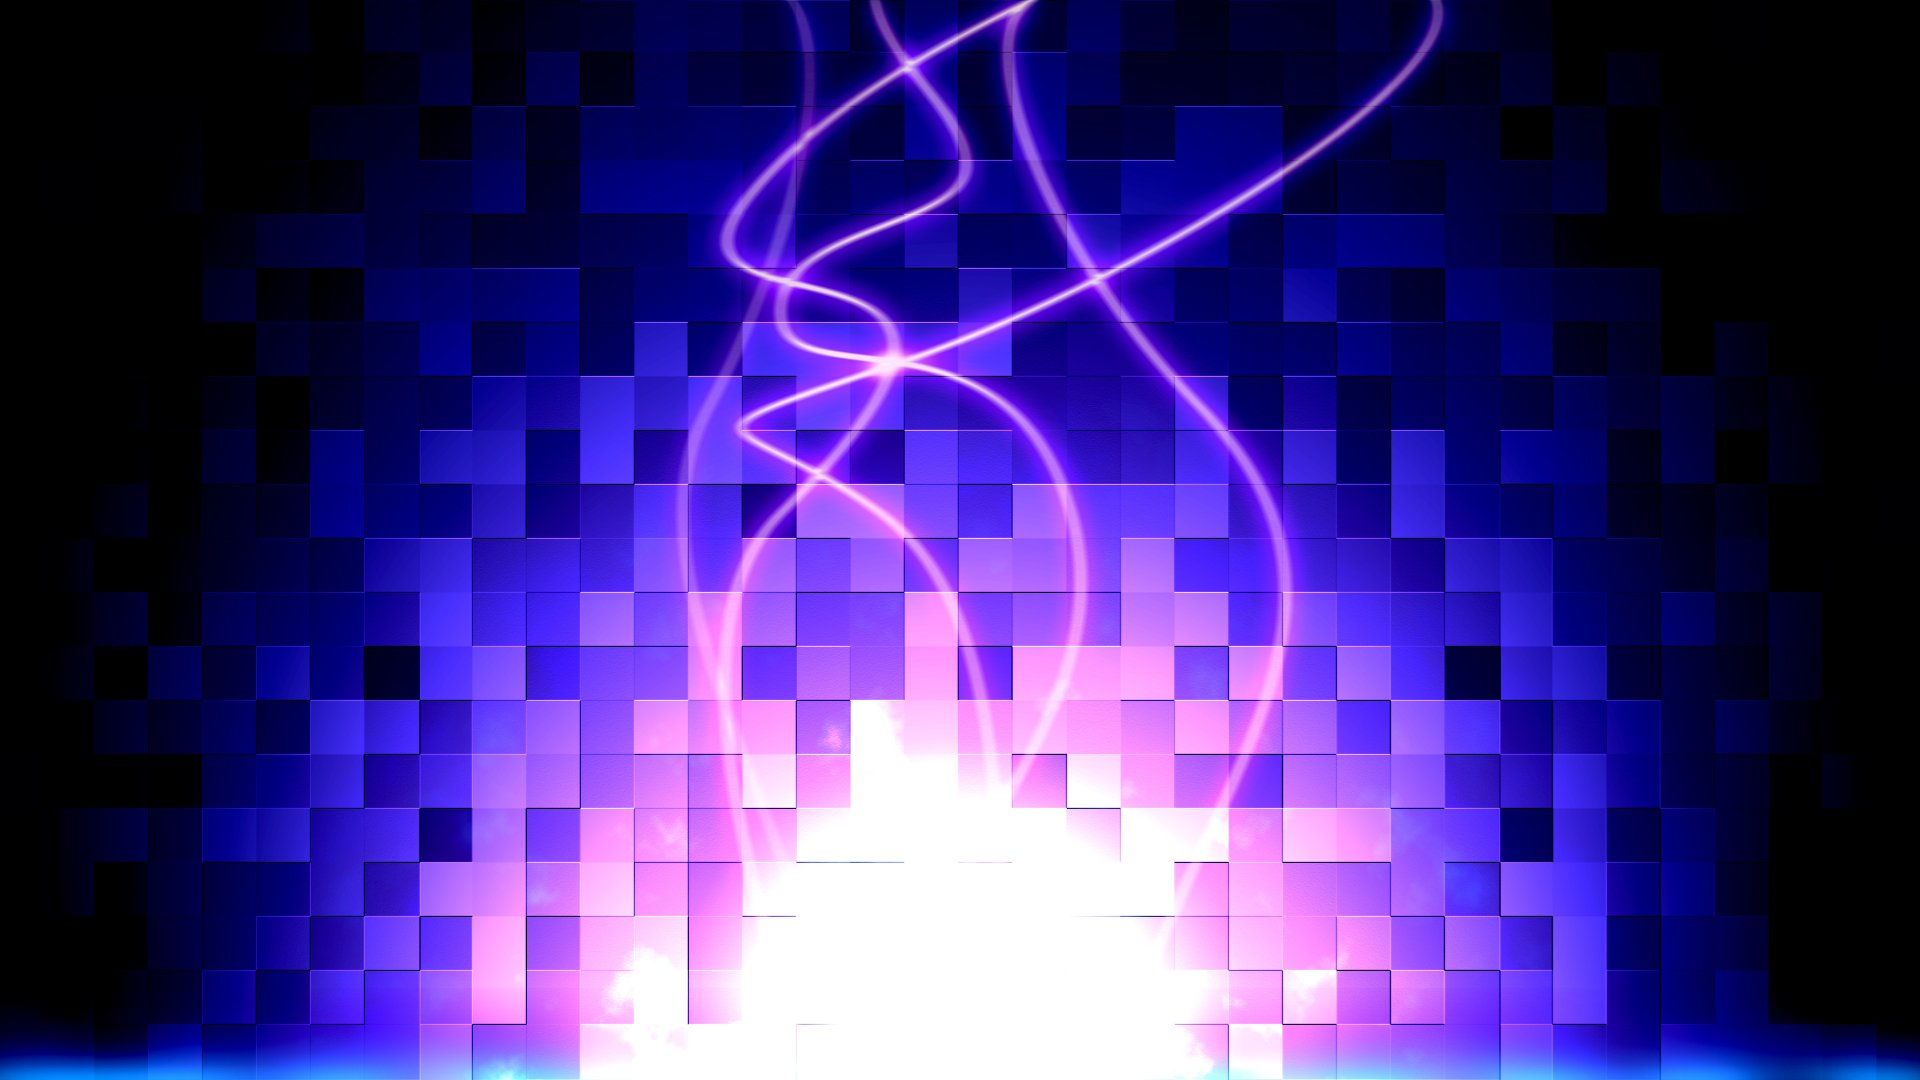 Abstract - Artistic  Gems Glow Purple Square Wallpaper